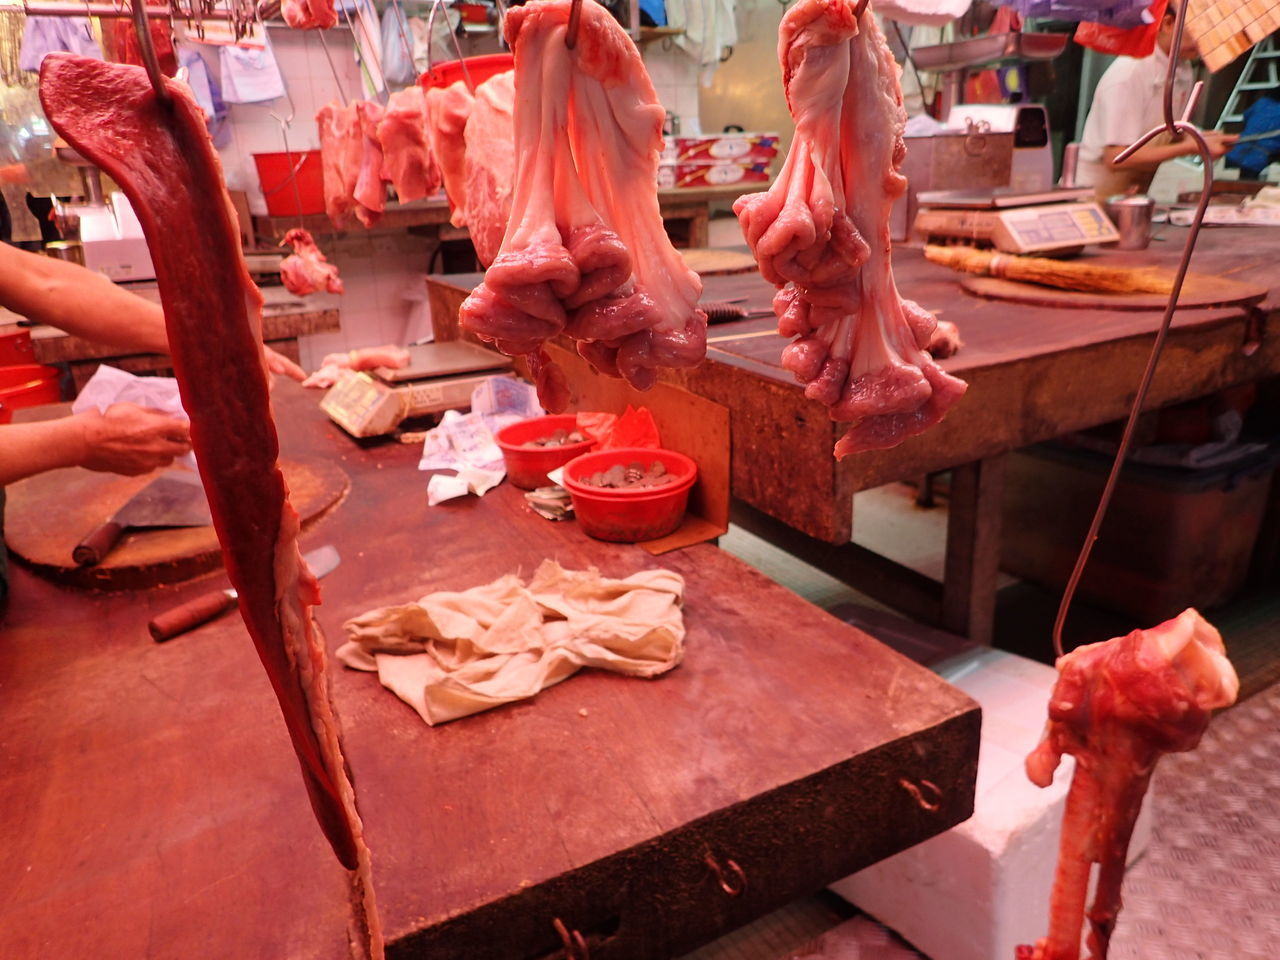 Local market vibes... Animal Parts Butcher Food Freshness Hong Kong Human Body Part Human Hand Innards Intestines Local Business Market Market Stall Meat Occupation Offal Raw Food Raw Meat   Red Meat Shau Kei Wan Sweetbread Wet Market Working